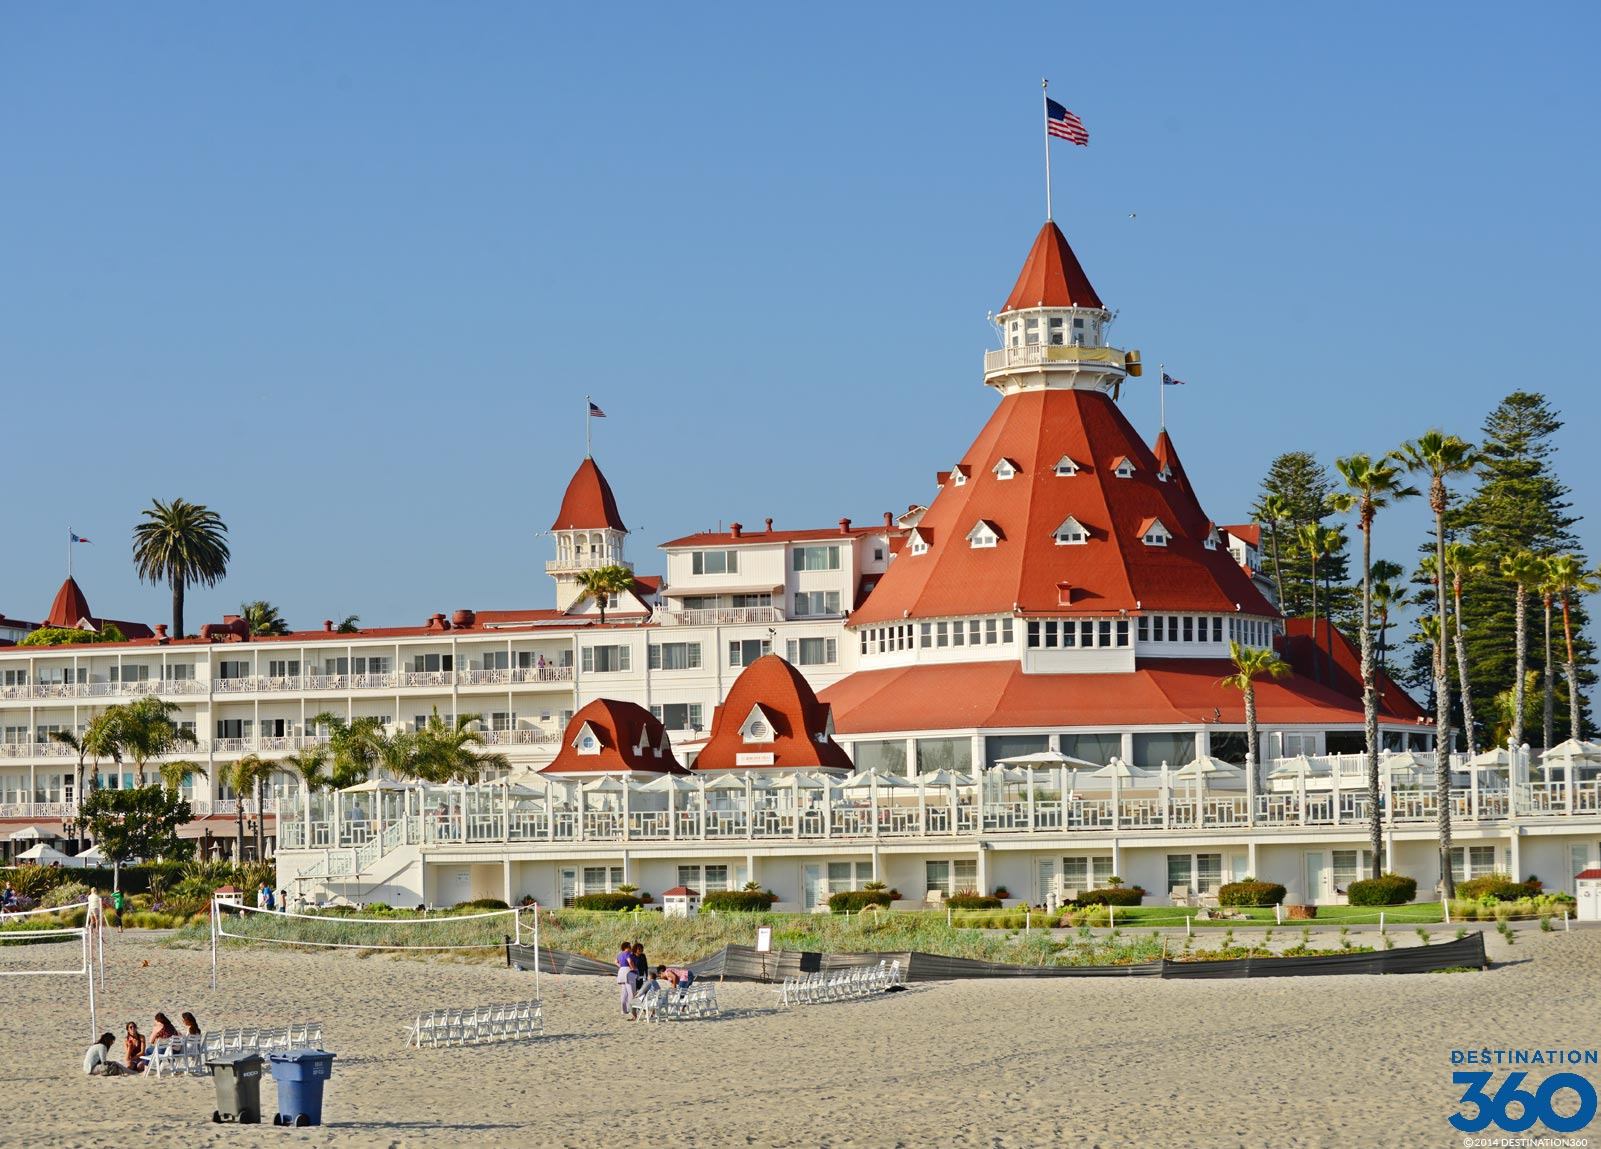 Best Beach Hotels Near San Diego